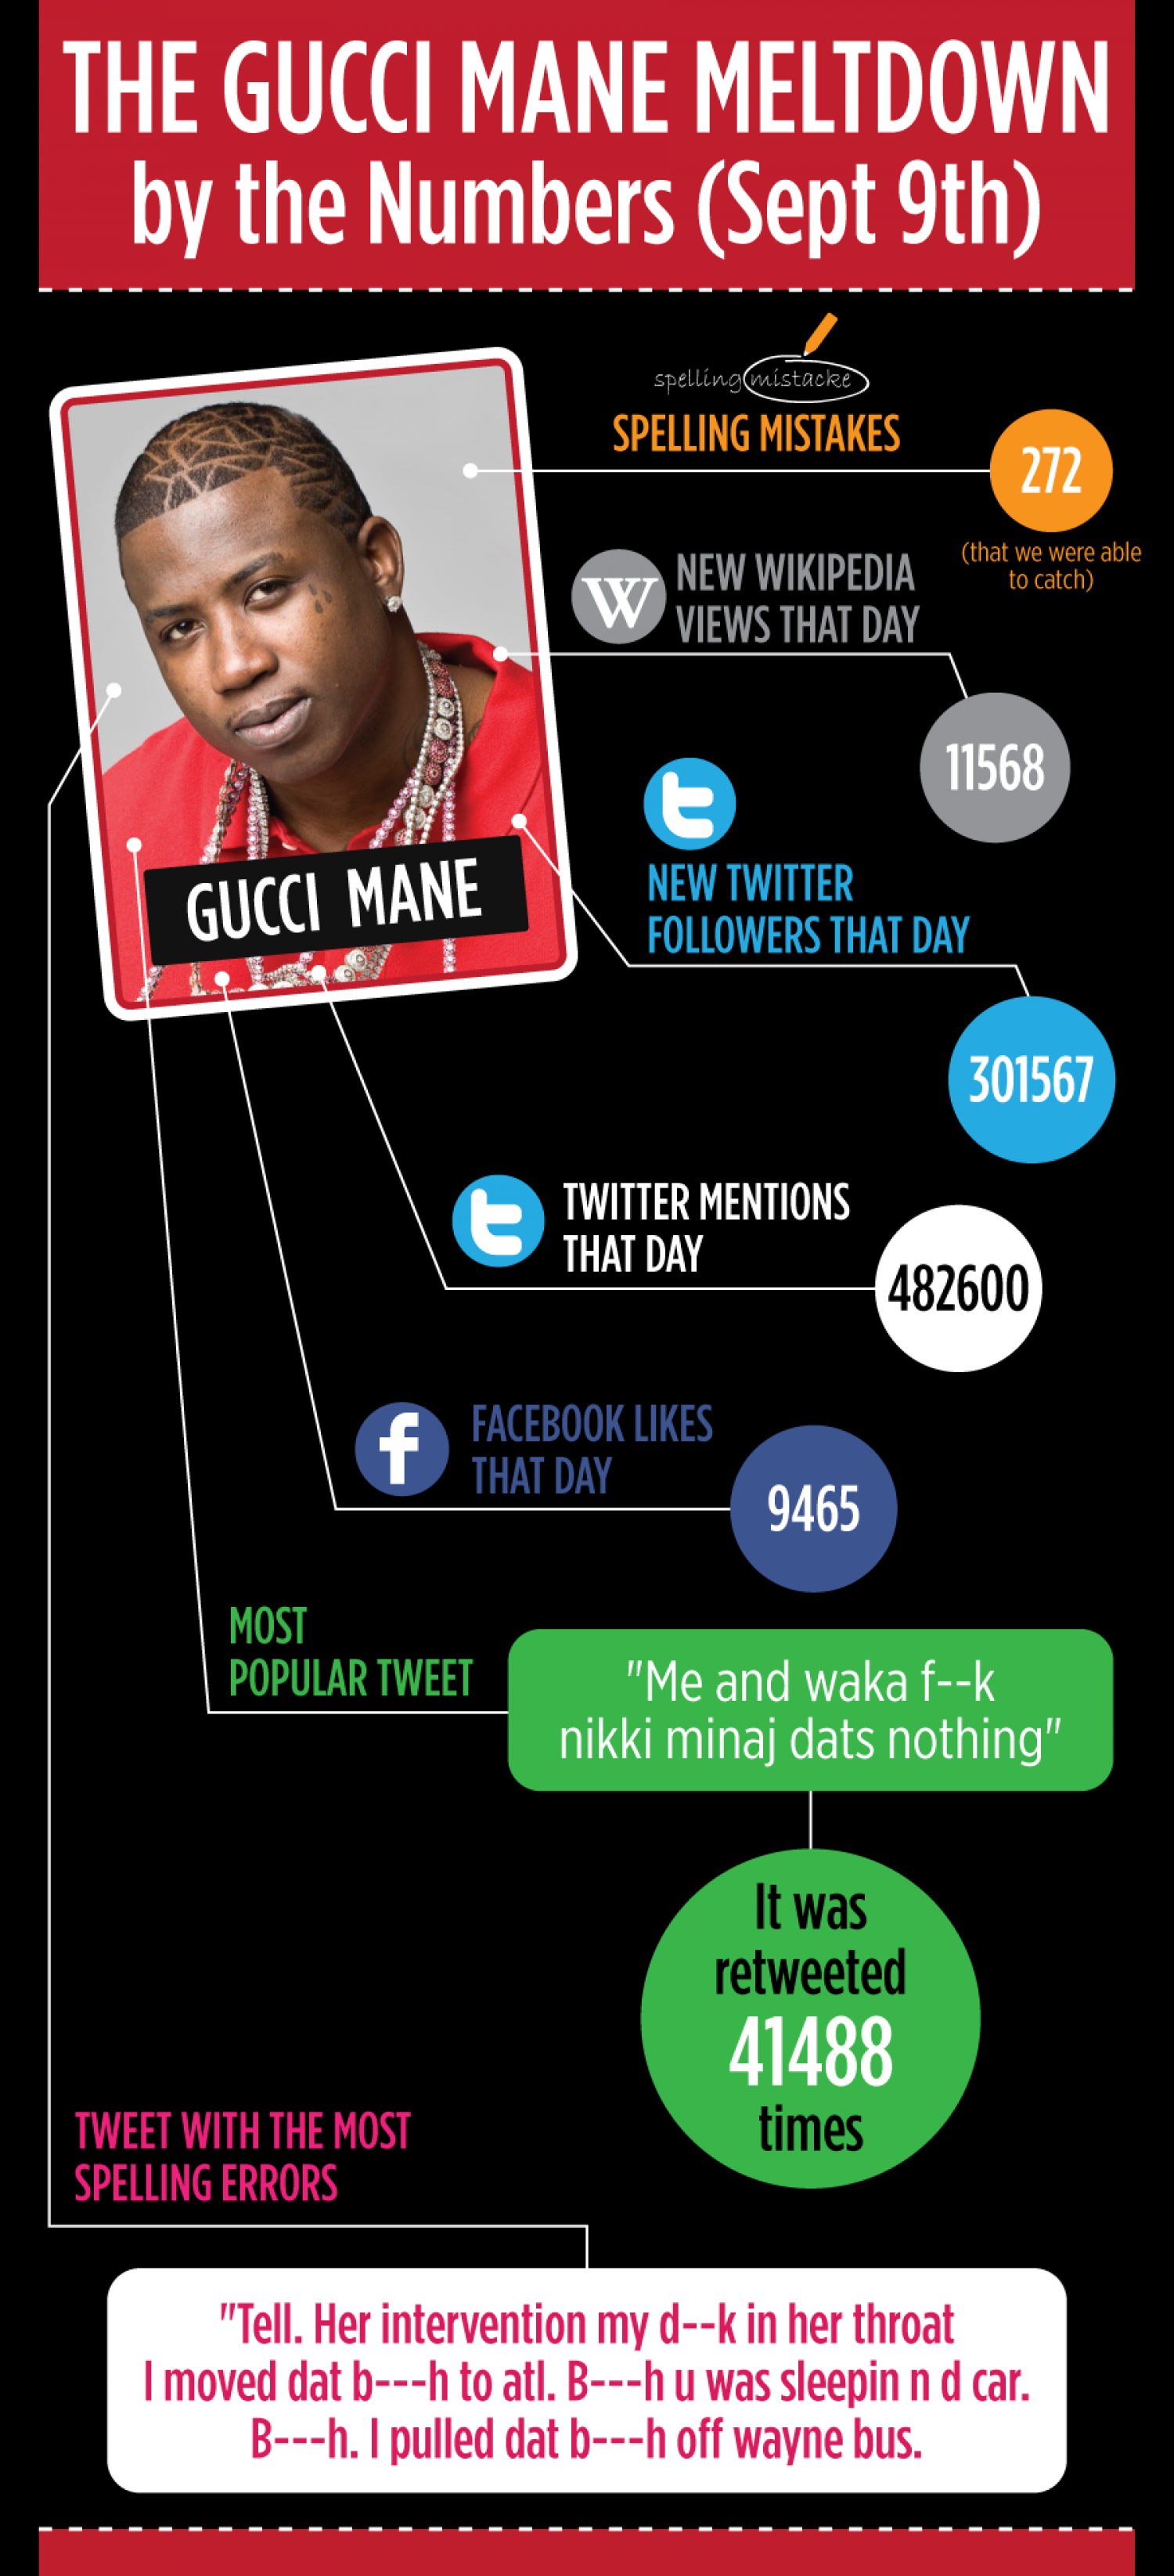 Gucci Mane Meltdown by the Numbers Infographic